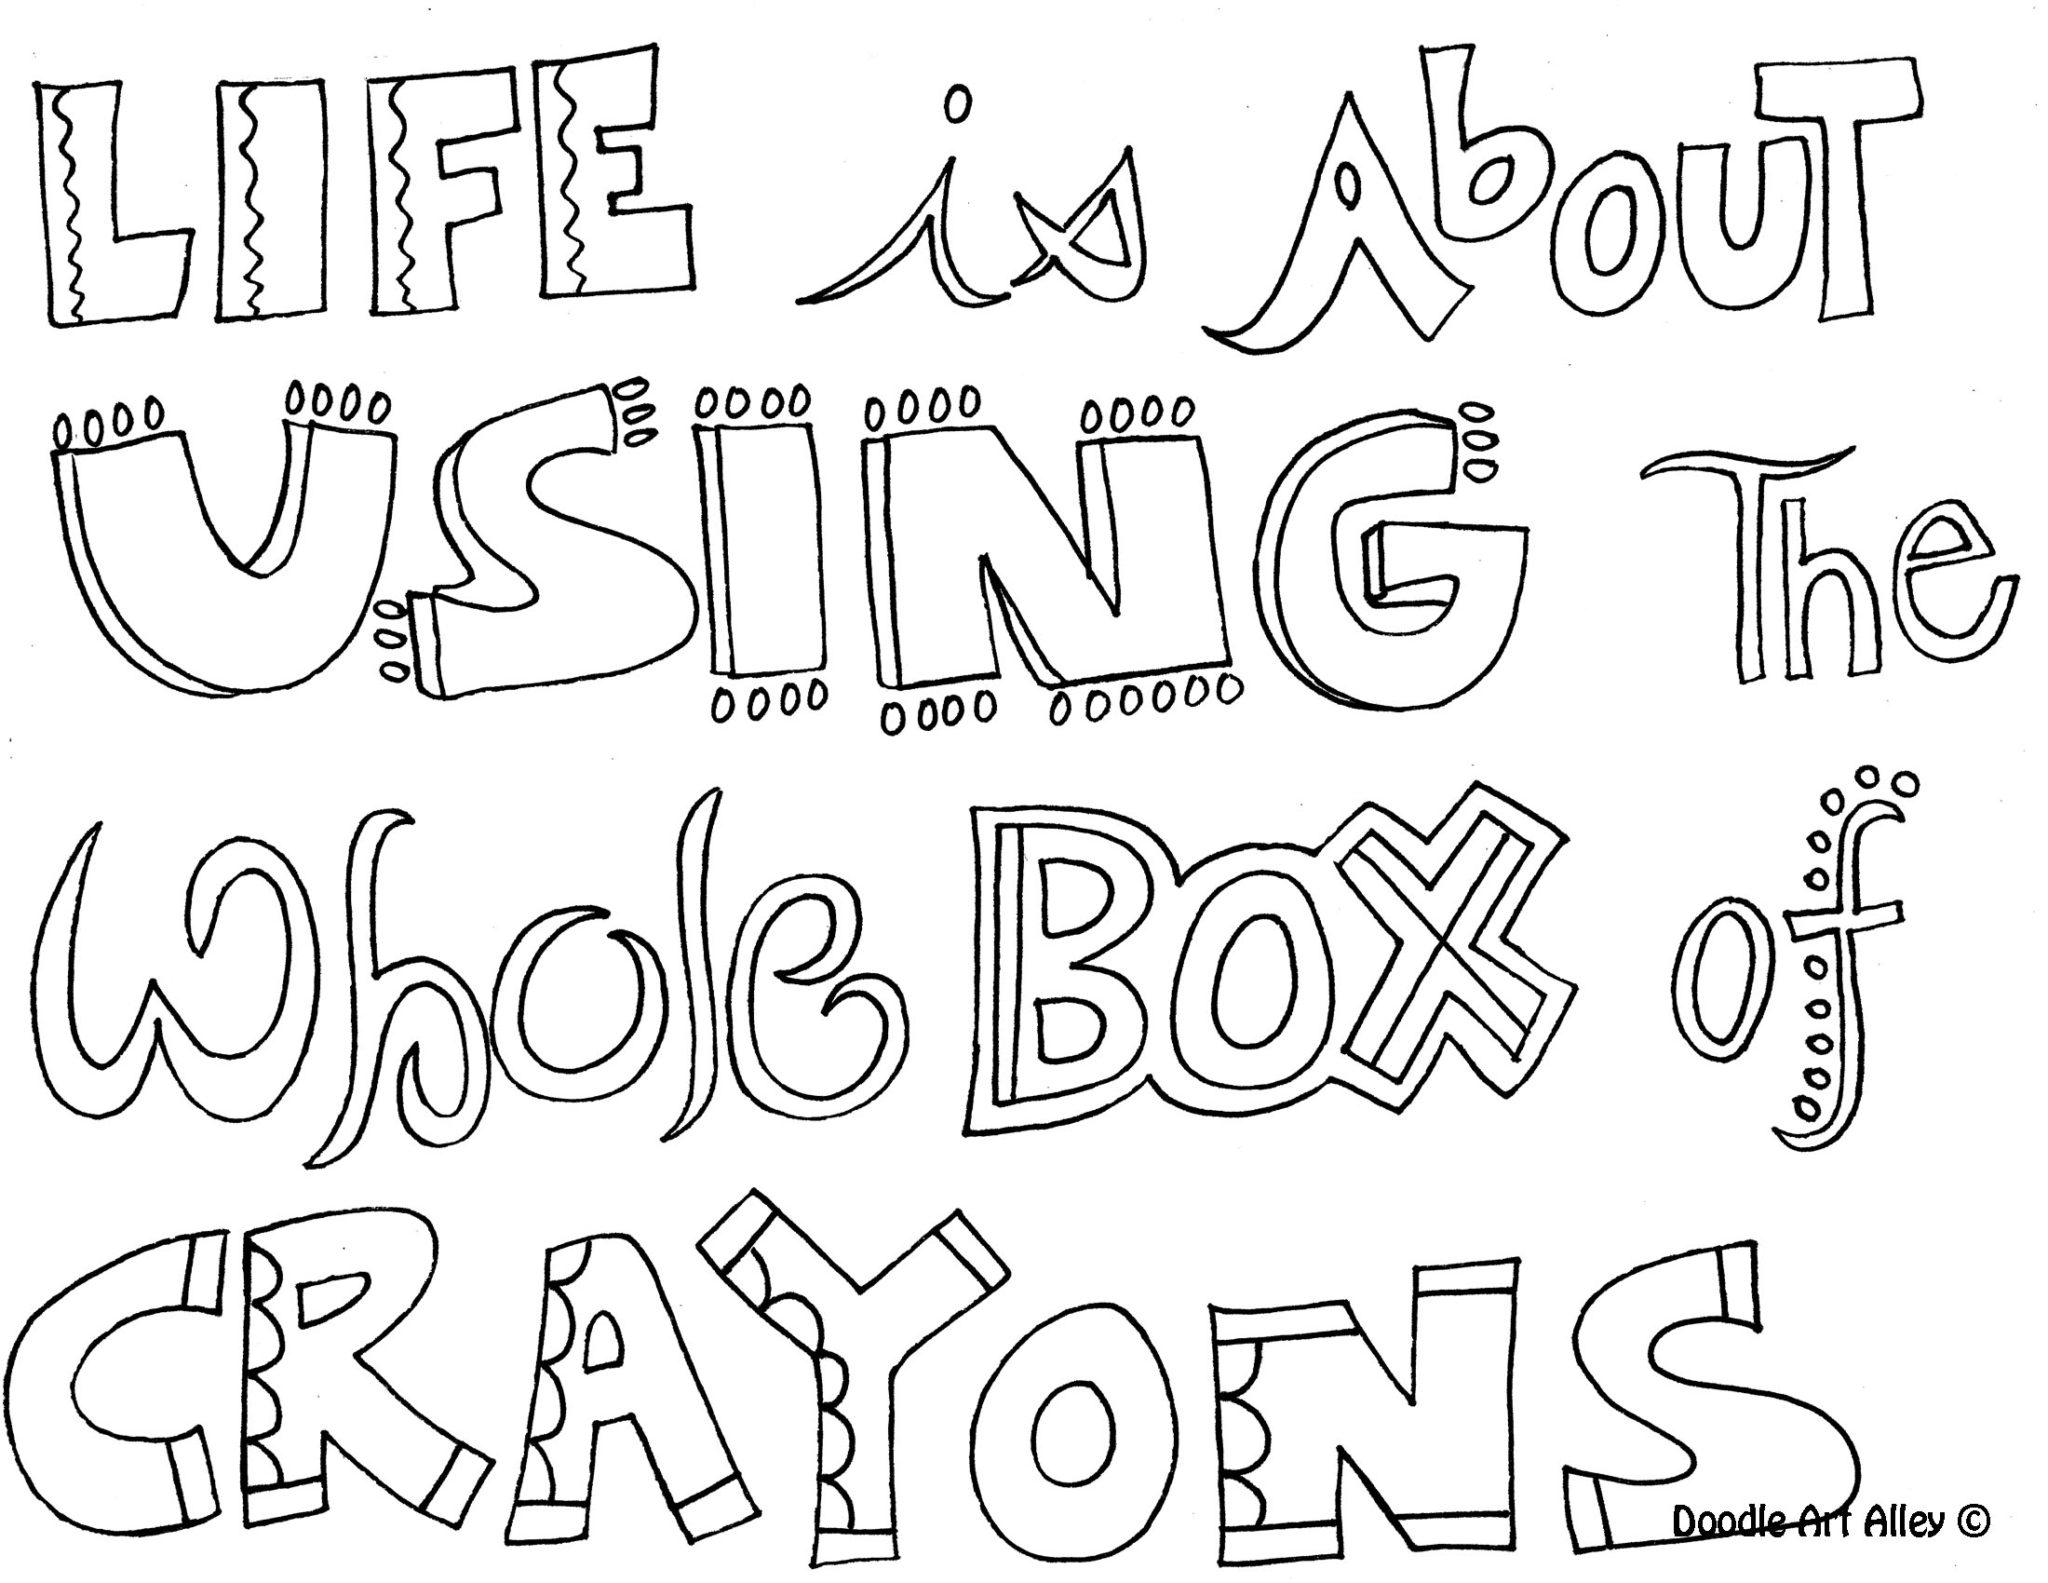 Coloring Pages Quotes : Quotes tasha chawner